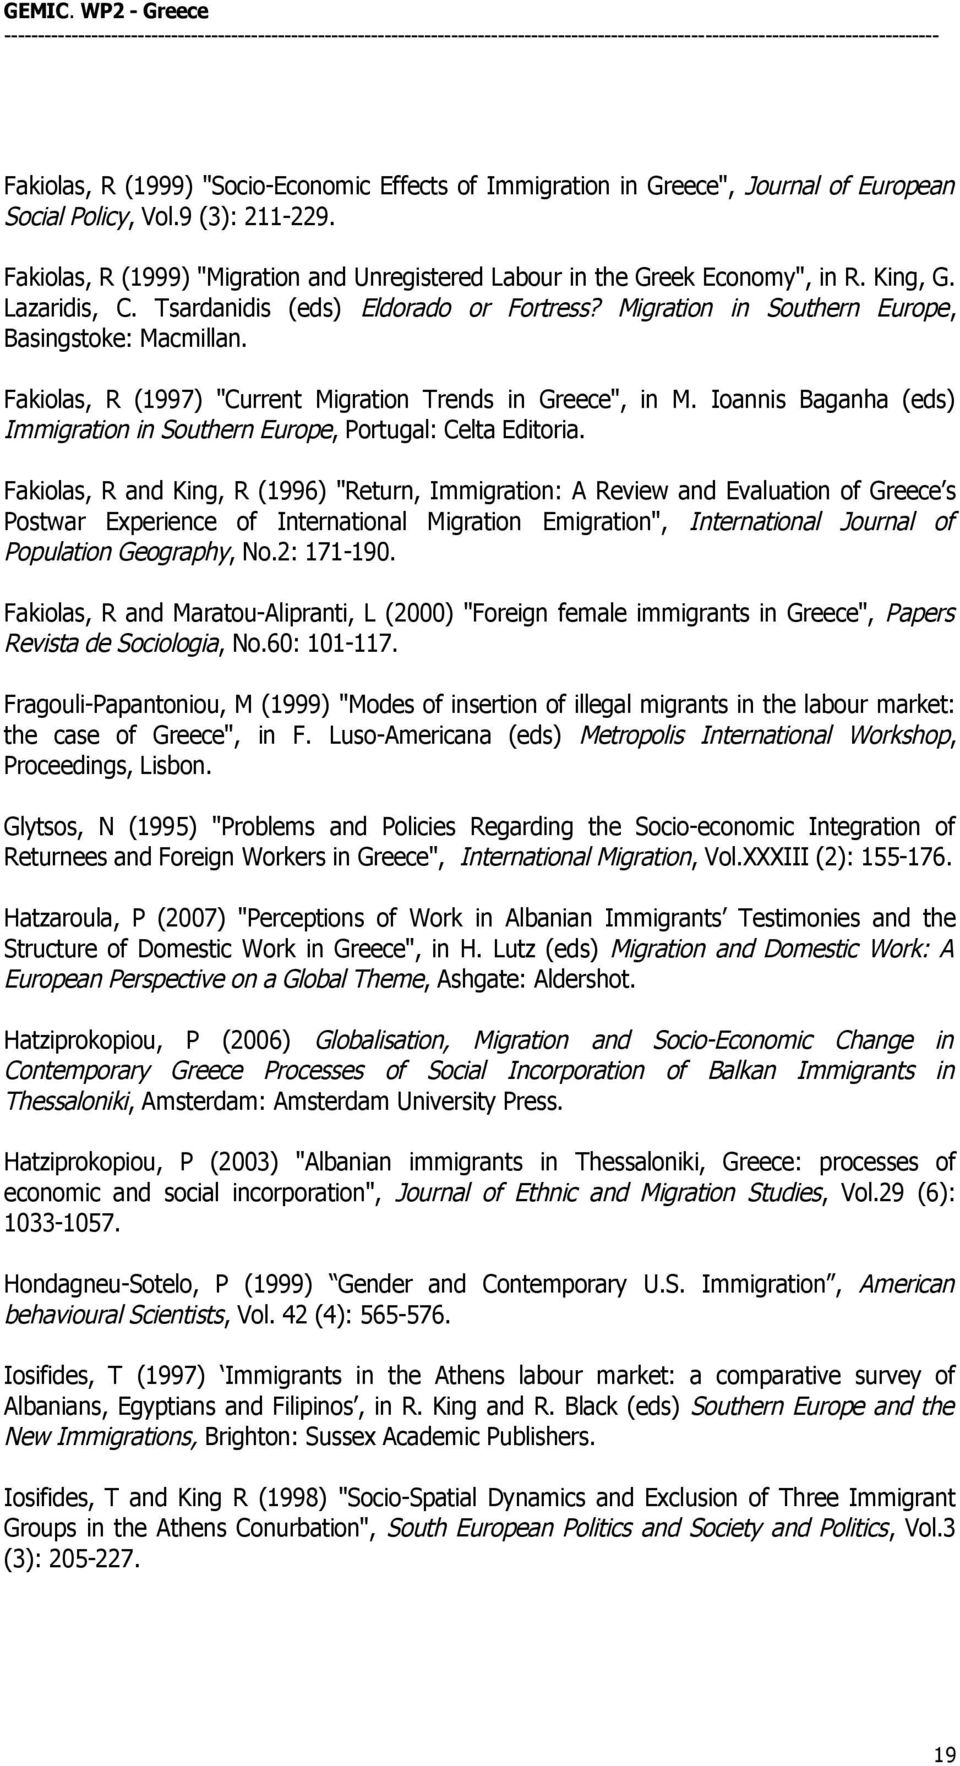 "Fakiolas, R (1997) ""Current Migration Trends in Greece"", in M. Ioannis Baganha (eds) Immigration in Southern Europe, Portugal: Celta Editoria."